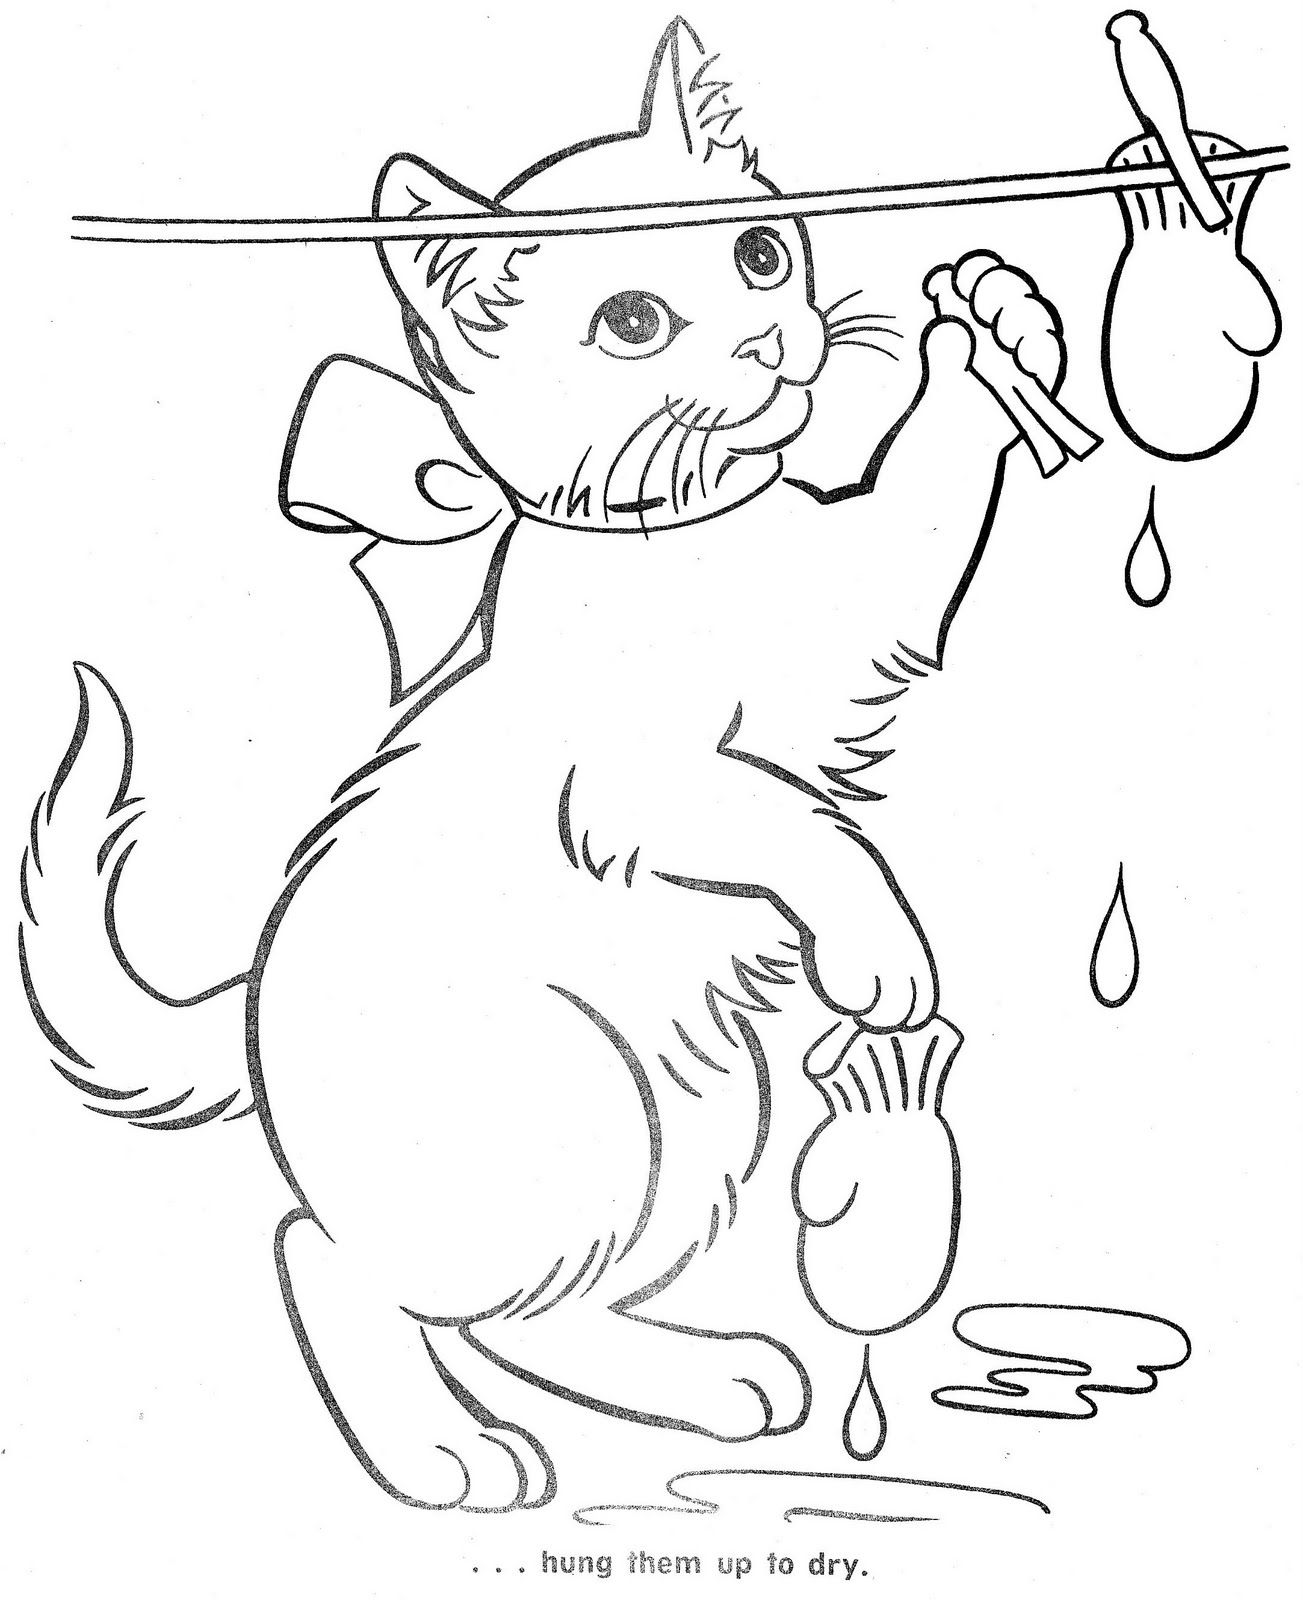 Pin By Tracee Stewart On Coloring Books Vintage 1 Kittens Coloring Stitch Coloring Pages Coloring Books